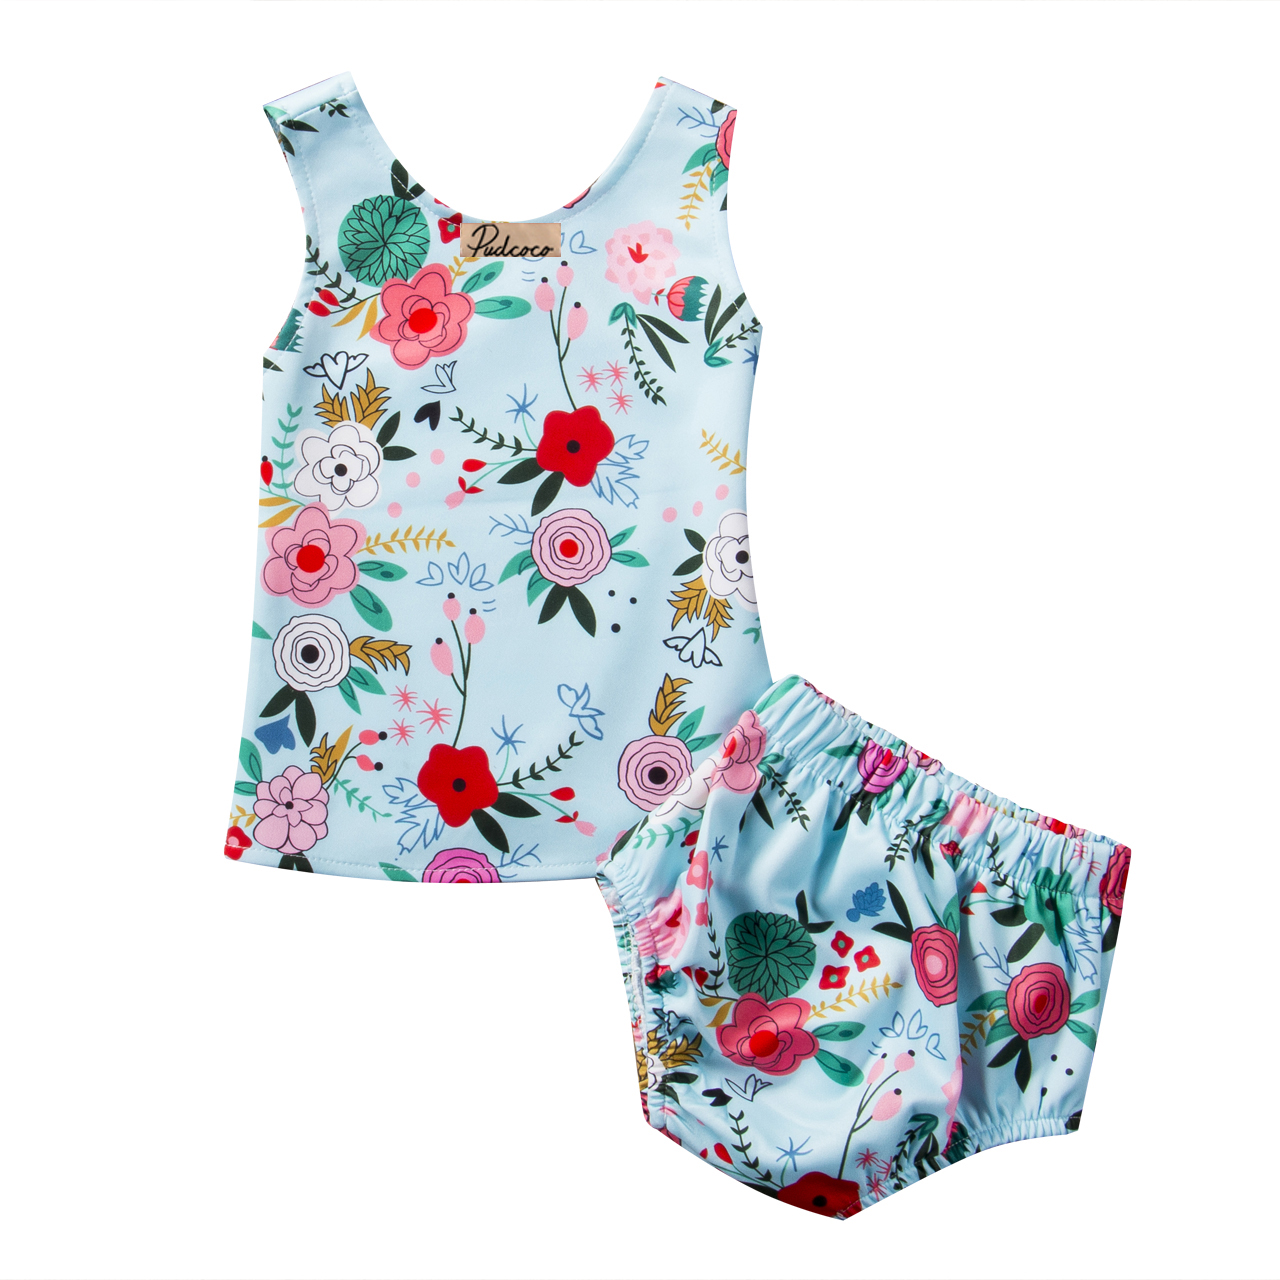 Pudcoco Summer Cotton Floral Newborn Baby Girls Clothes O-Neck Sleeveless Tops Shorts Pants Outfits Set 0-24M 0 24m floral baby girl clothes set 2017 summer sleeveless ruffles crop tops baby bloomers shorts 2pcs outfits children sunsuit